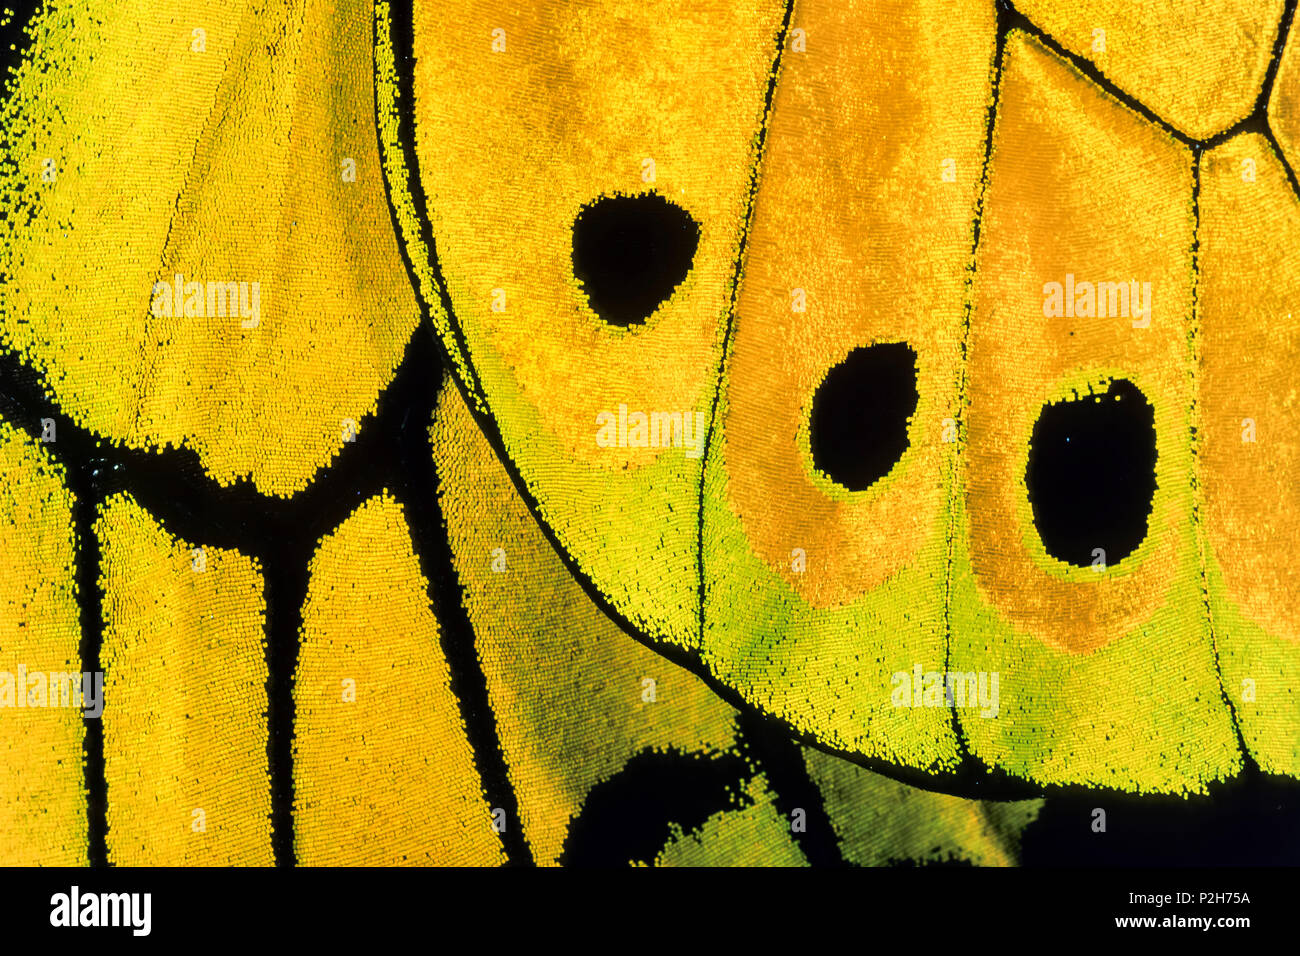 Wing detail of a male Goliath Birdwing Butterfly, Ornithoptera goliath samson, West Papua, Neuguinea, Indonesia, Asia - Stock Image